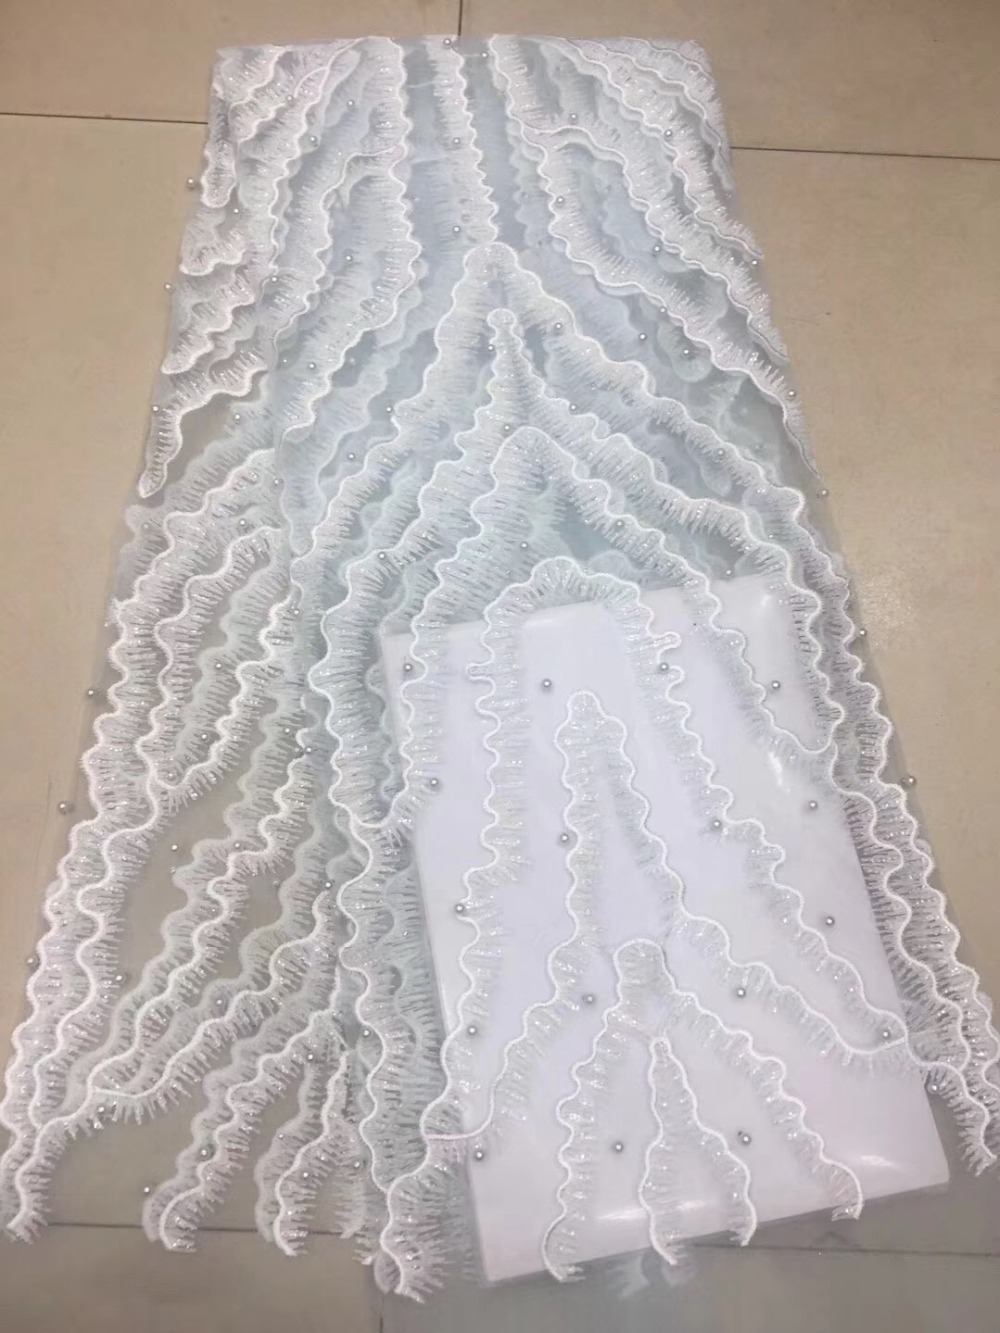 New Nigerian Lace Fabric 2018 High Quality tulle Lace Fabric Beautiful beads Lace For African Wedding Dress